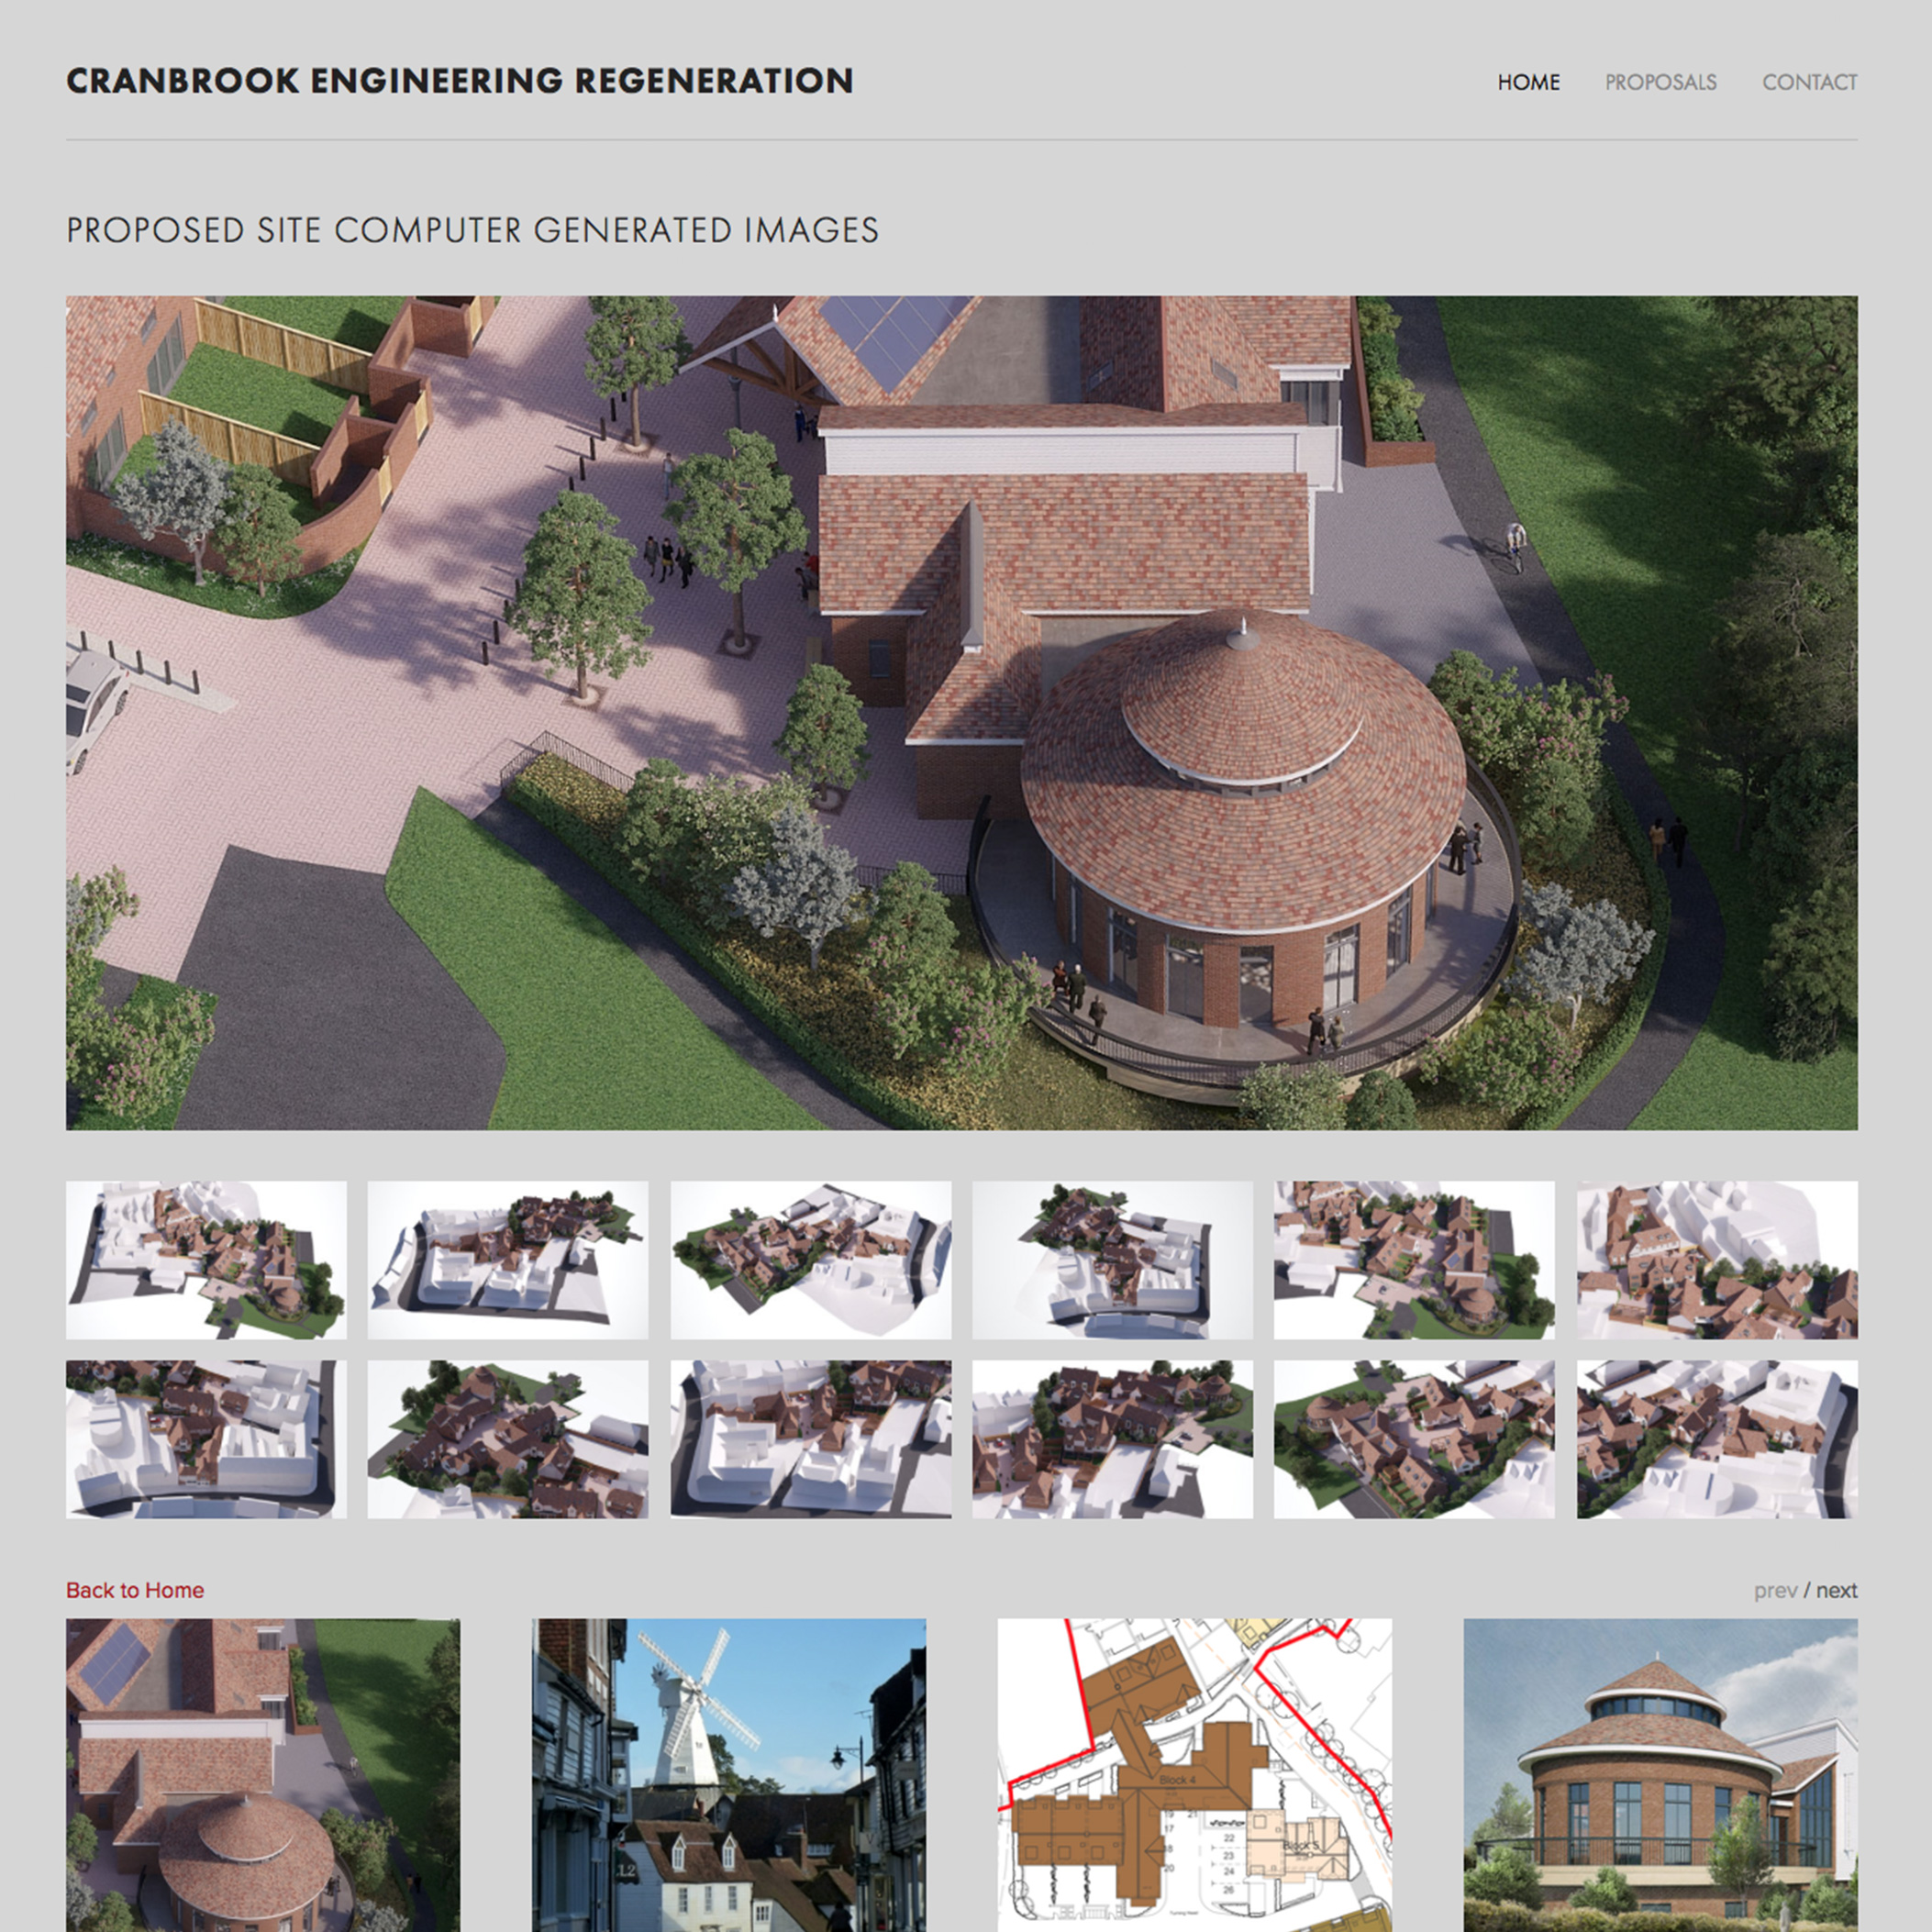 Cranbrook Engineering Works - comprehensive website presenting development and planning proposals for the local community